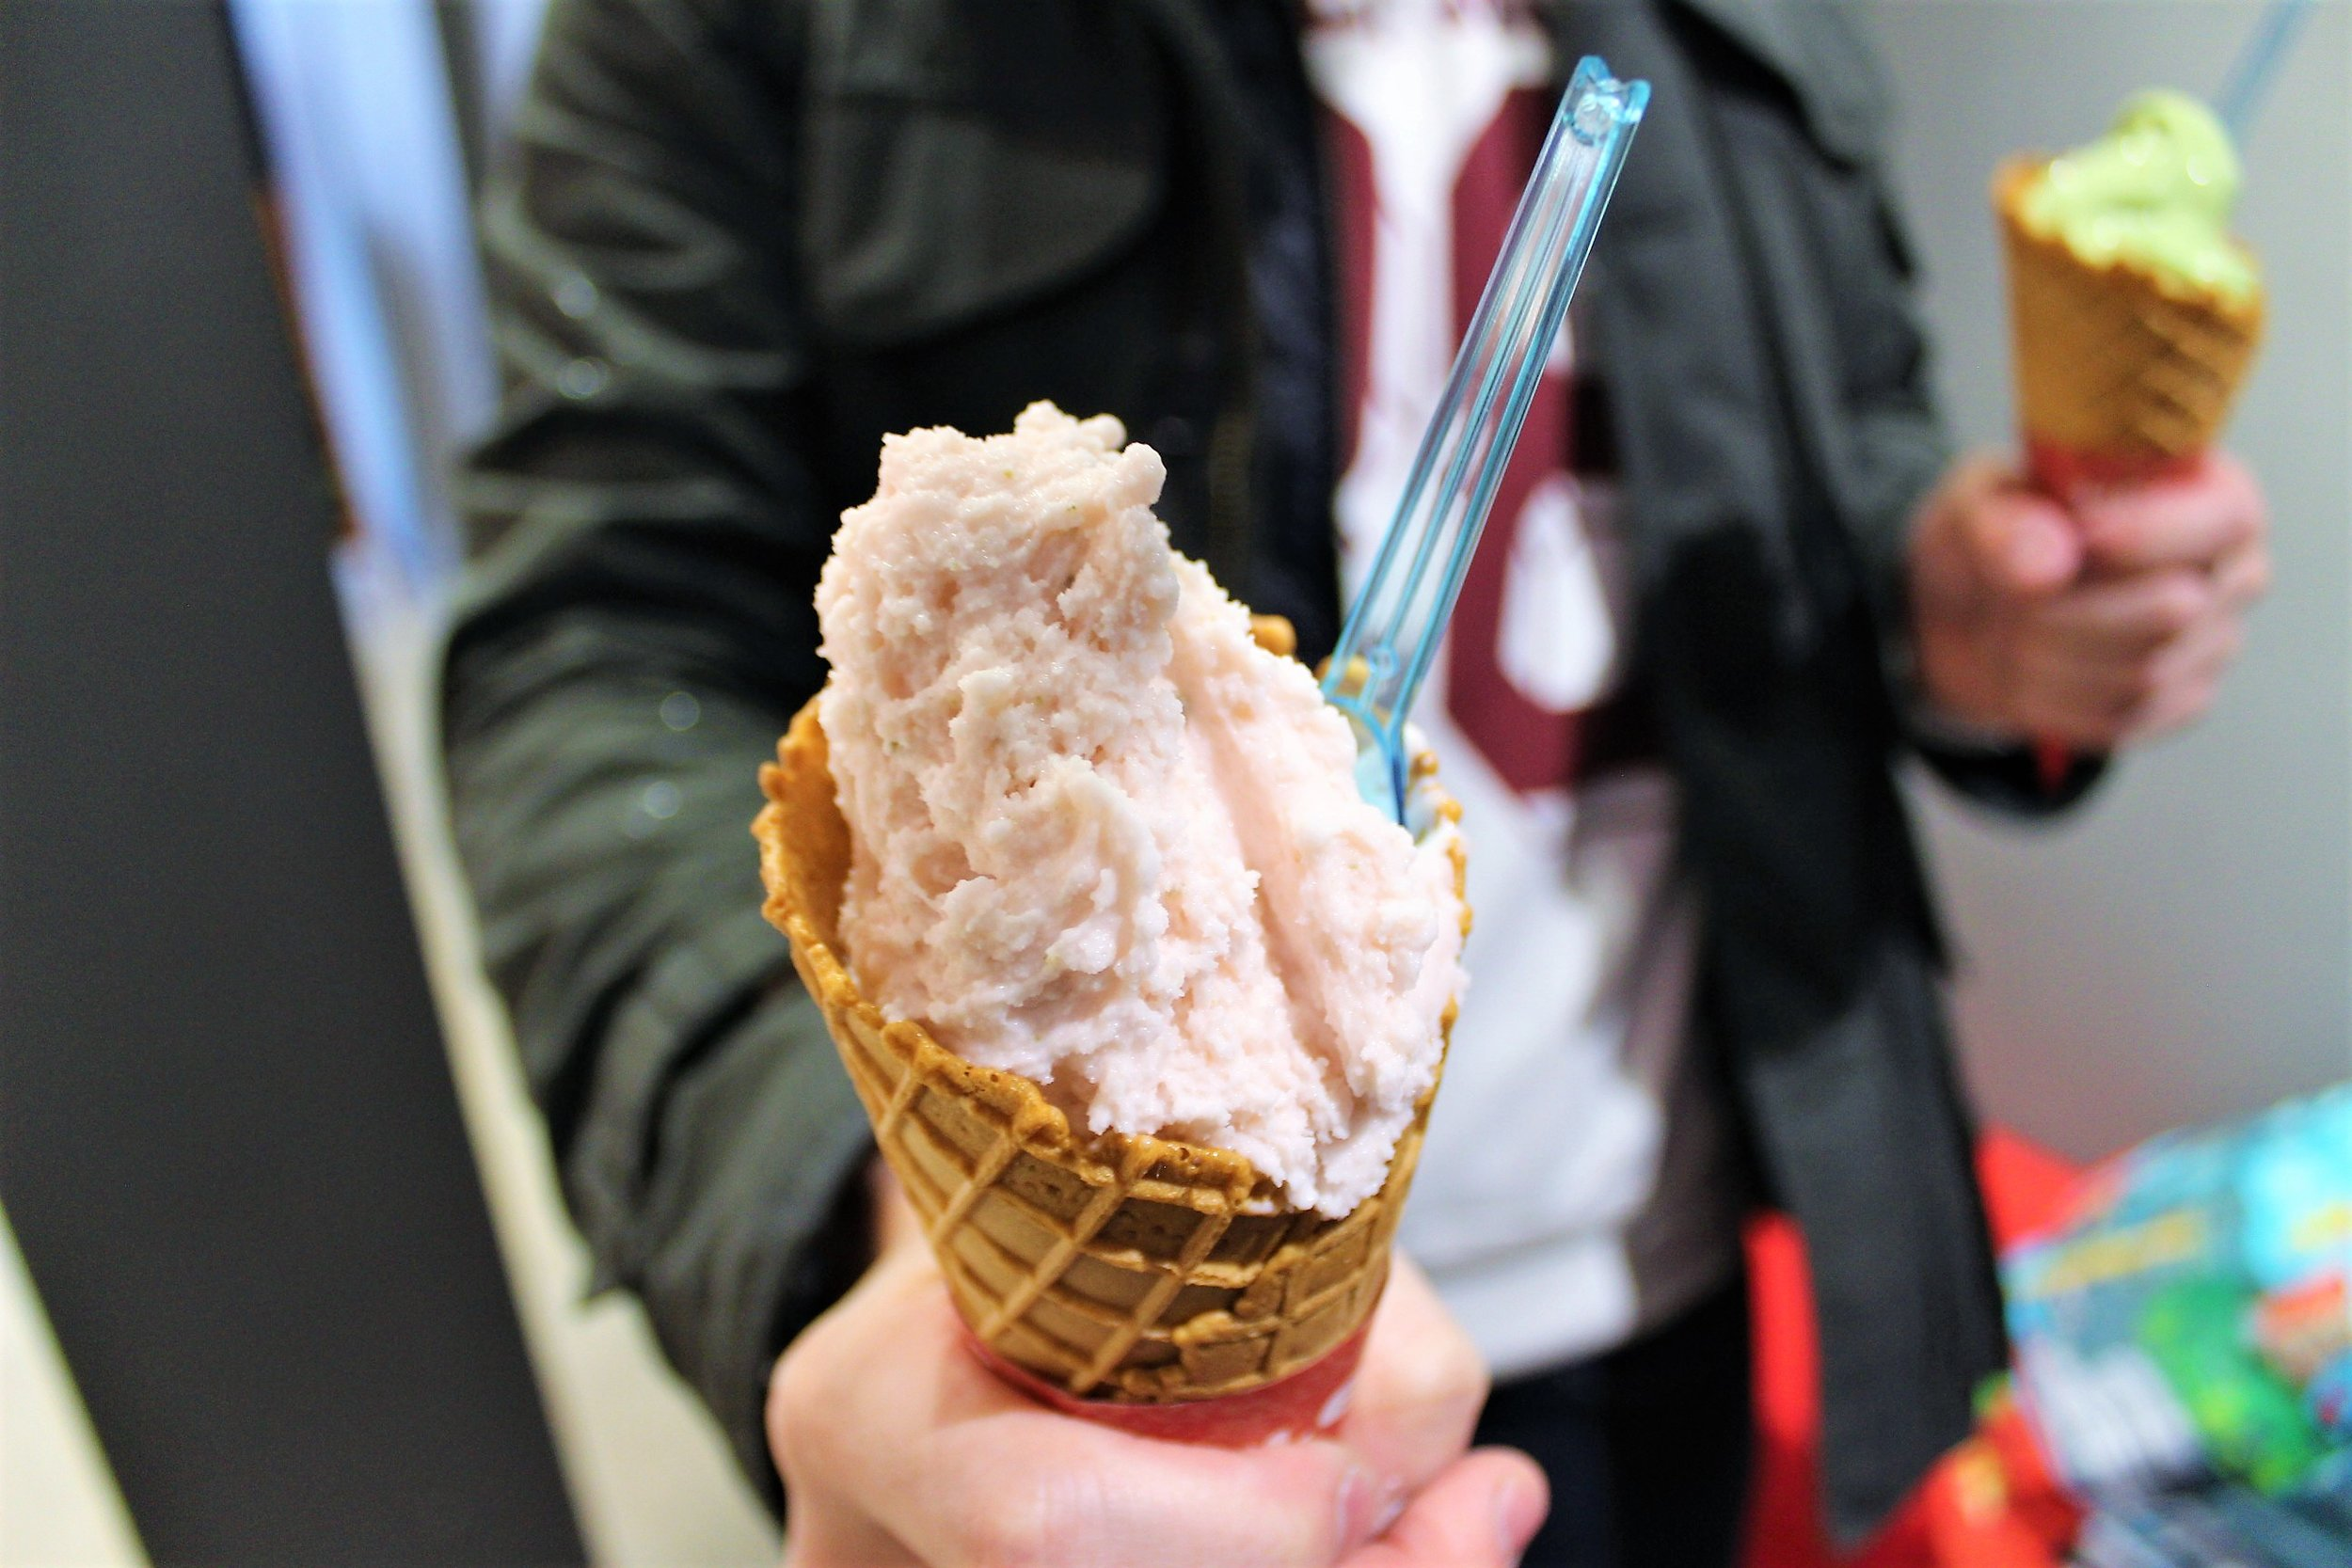 Cherry Blossom Ice Cream at Shinpachi Chaya in Kyoto, Japan